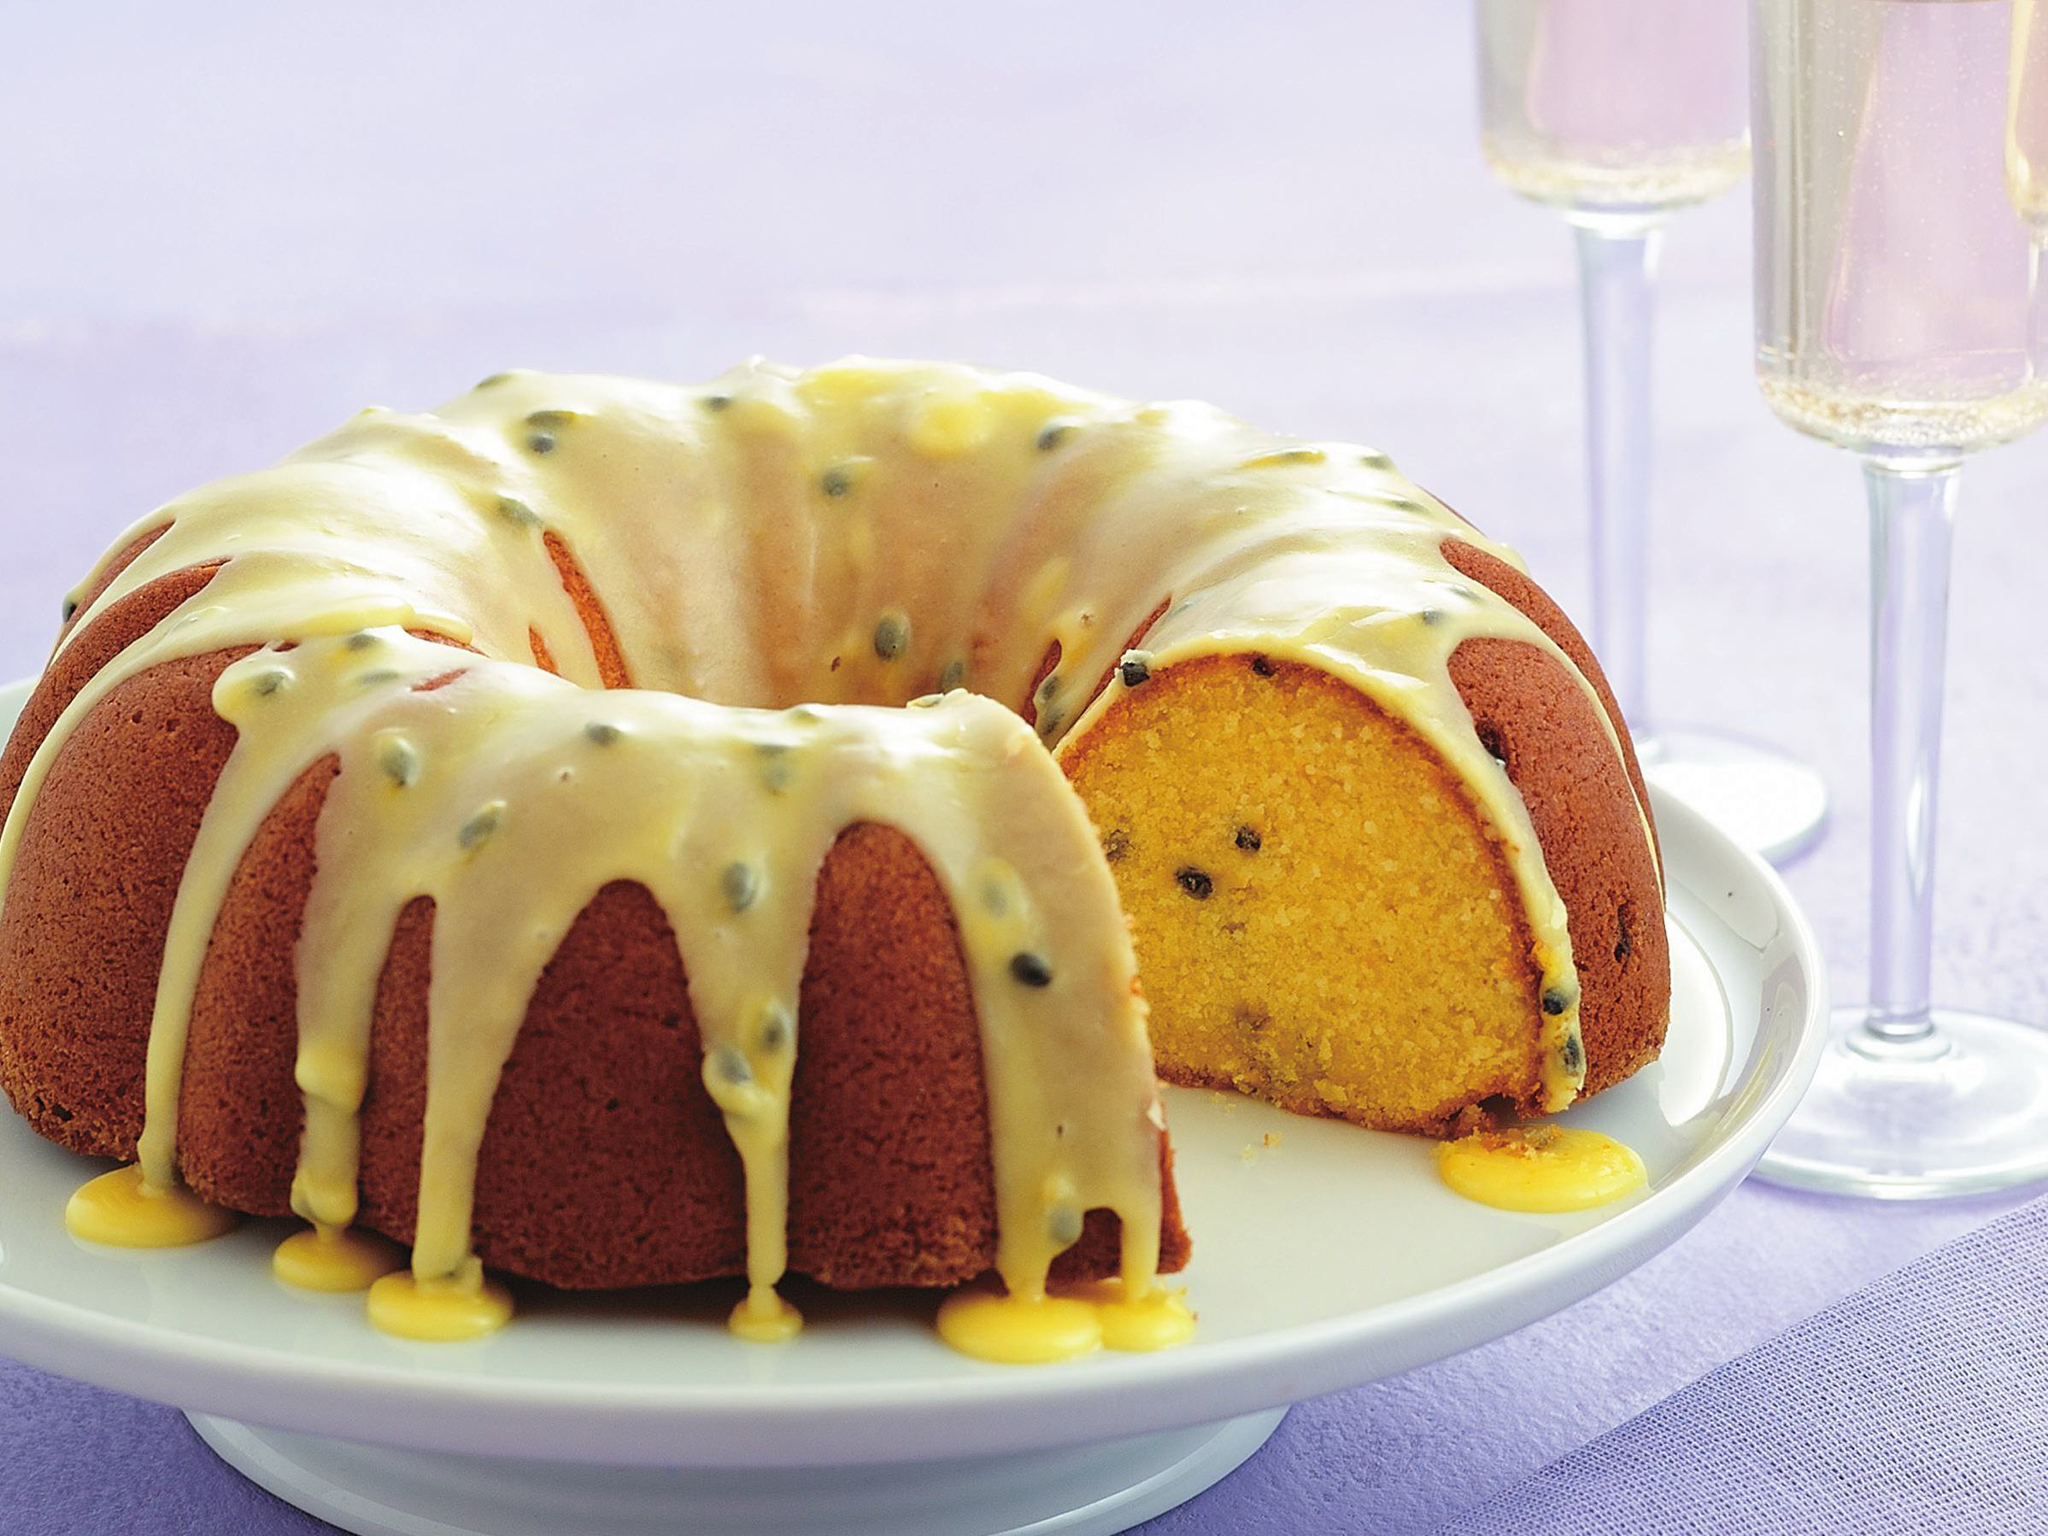 Fruit Cake Recipe In Malayalam: The Gallery For --> Annoying Orange Passion Fruit